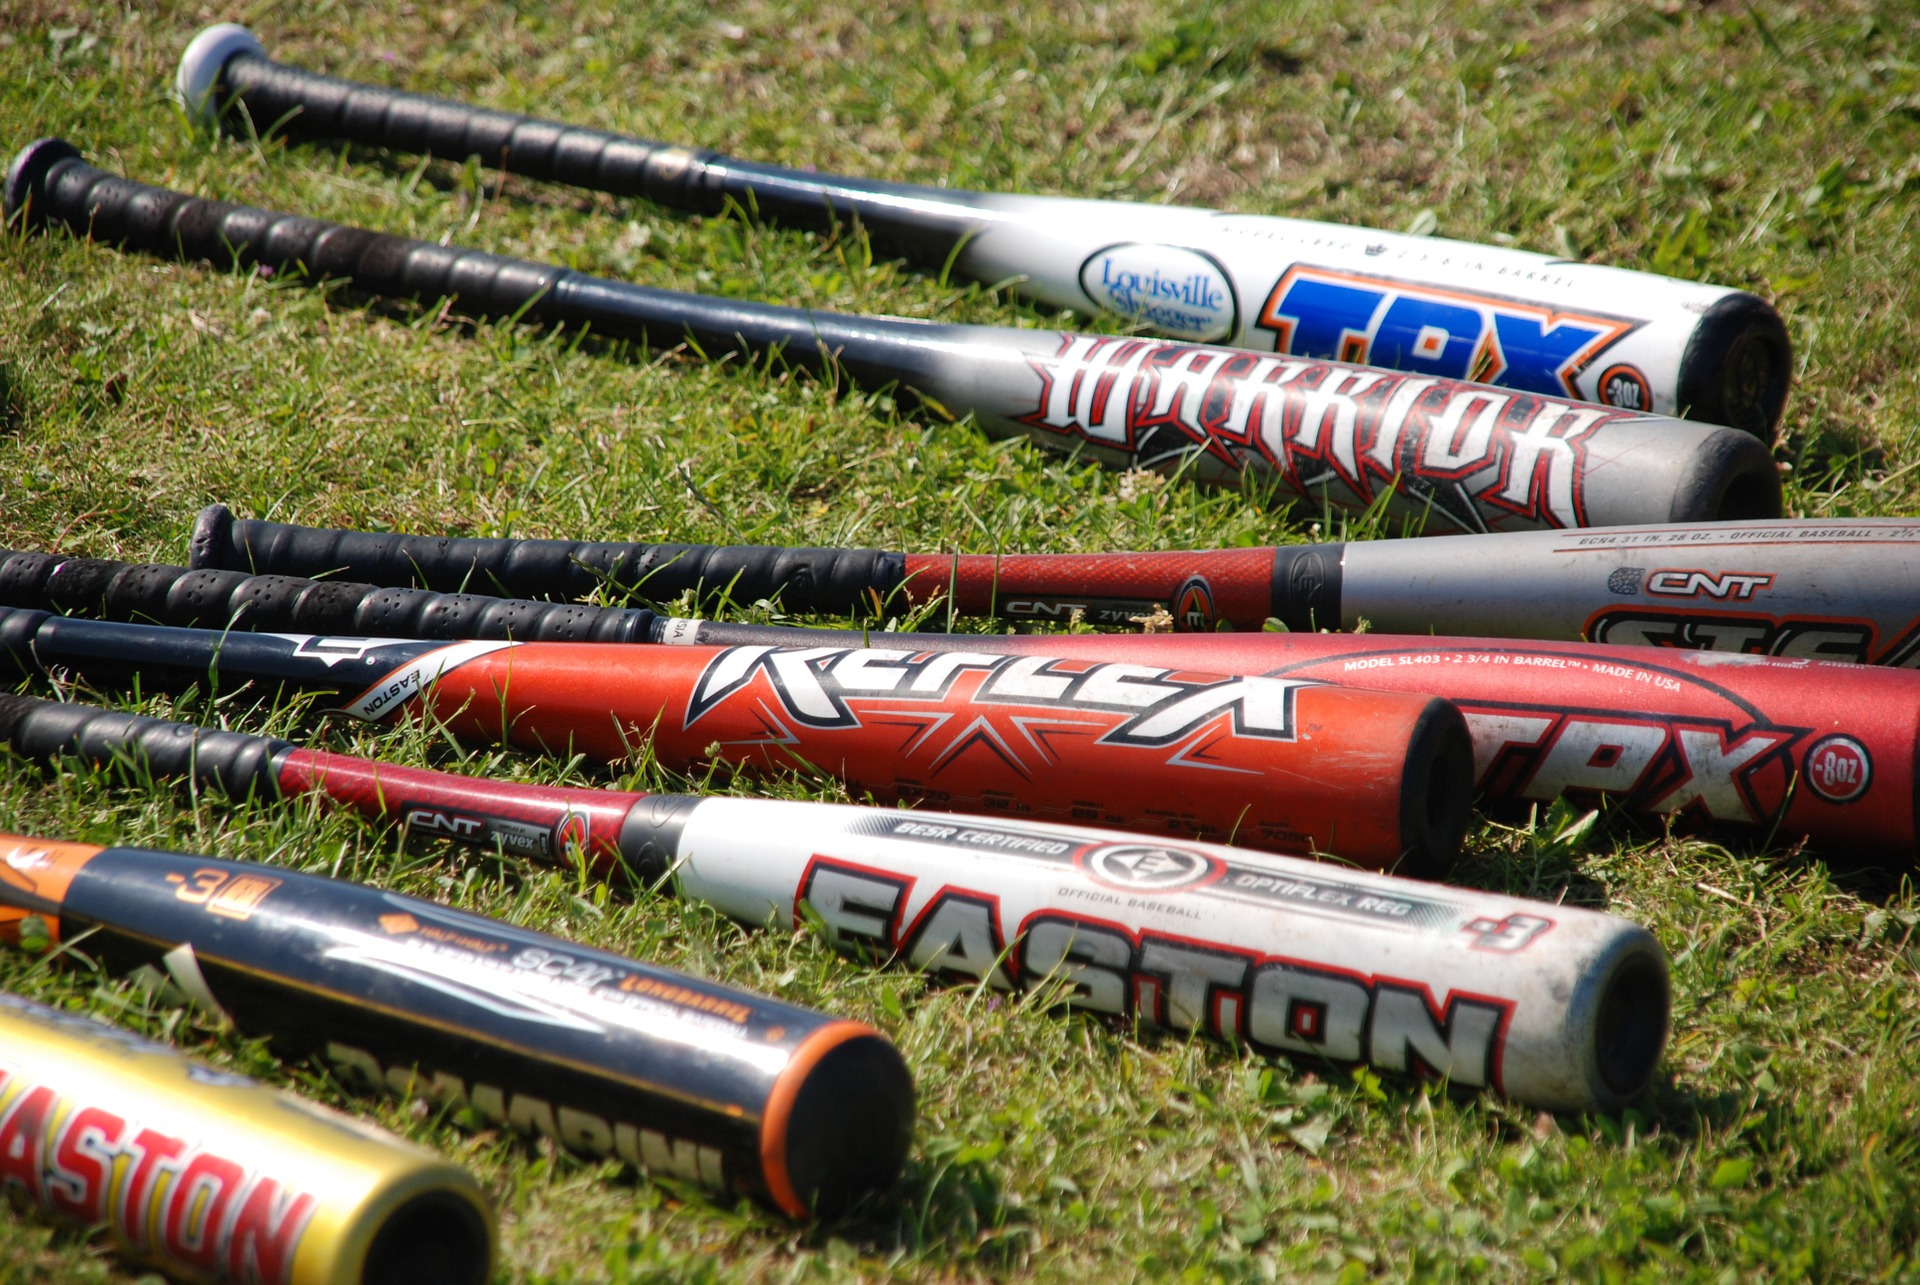 What are metal baseball bats made of?